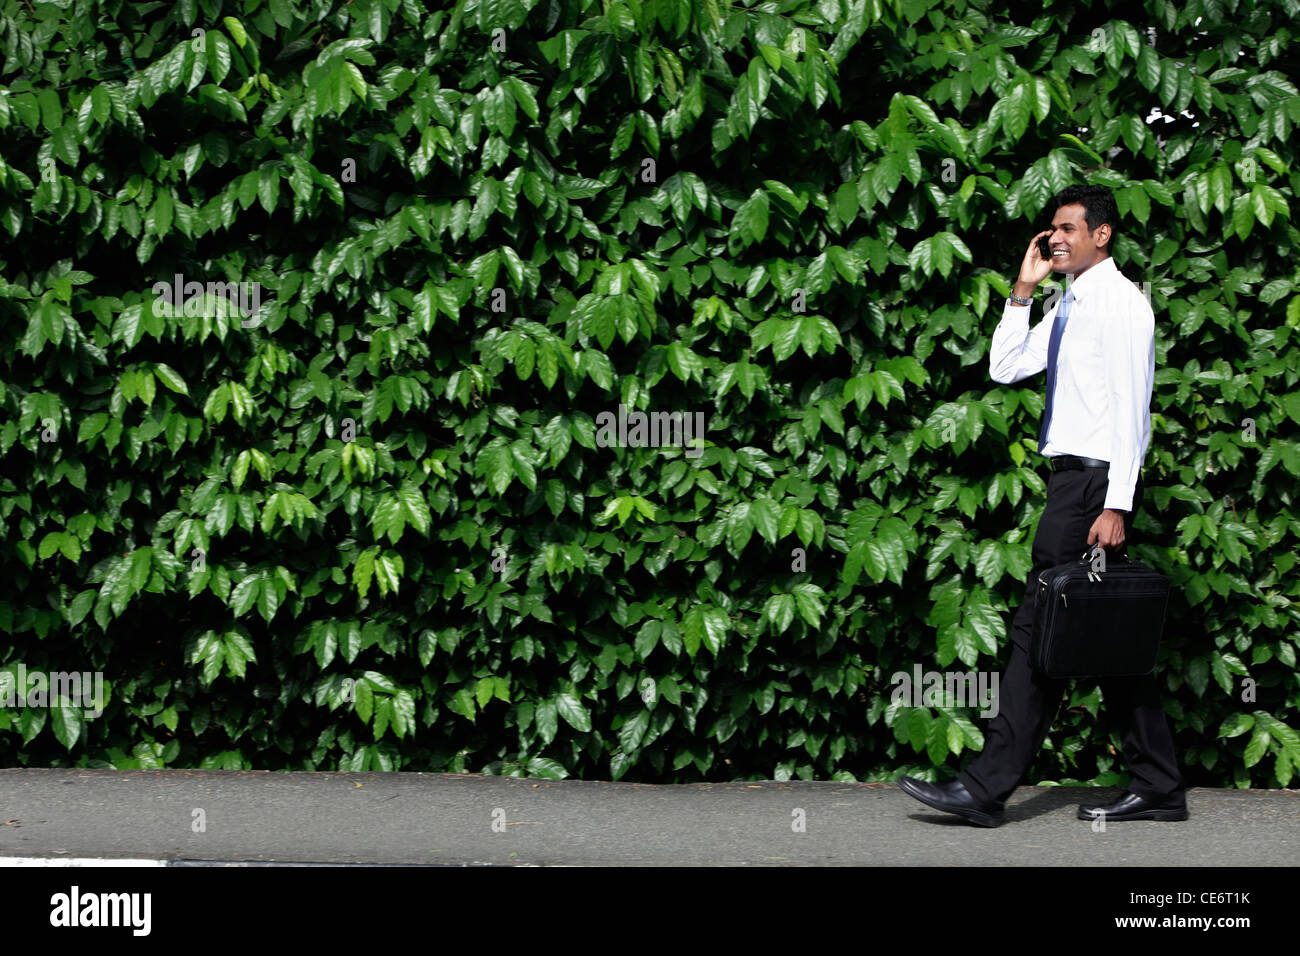 Indian man walking in front of green leafy hedge - Stock Image